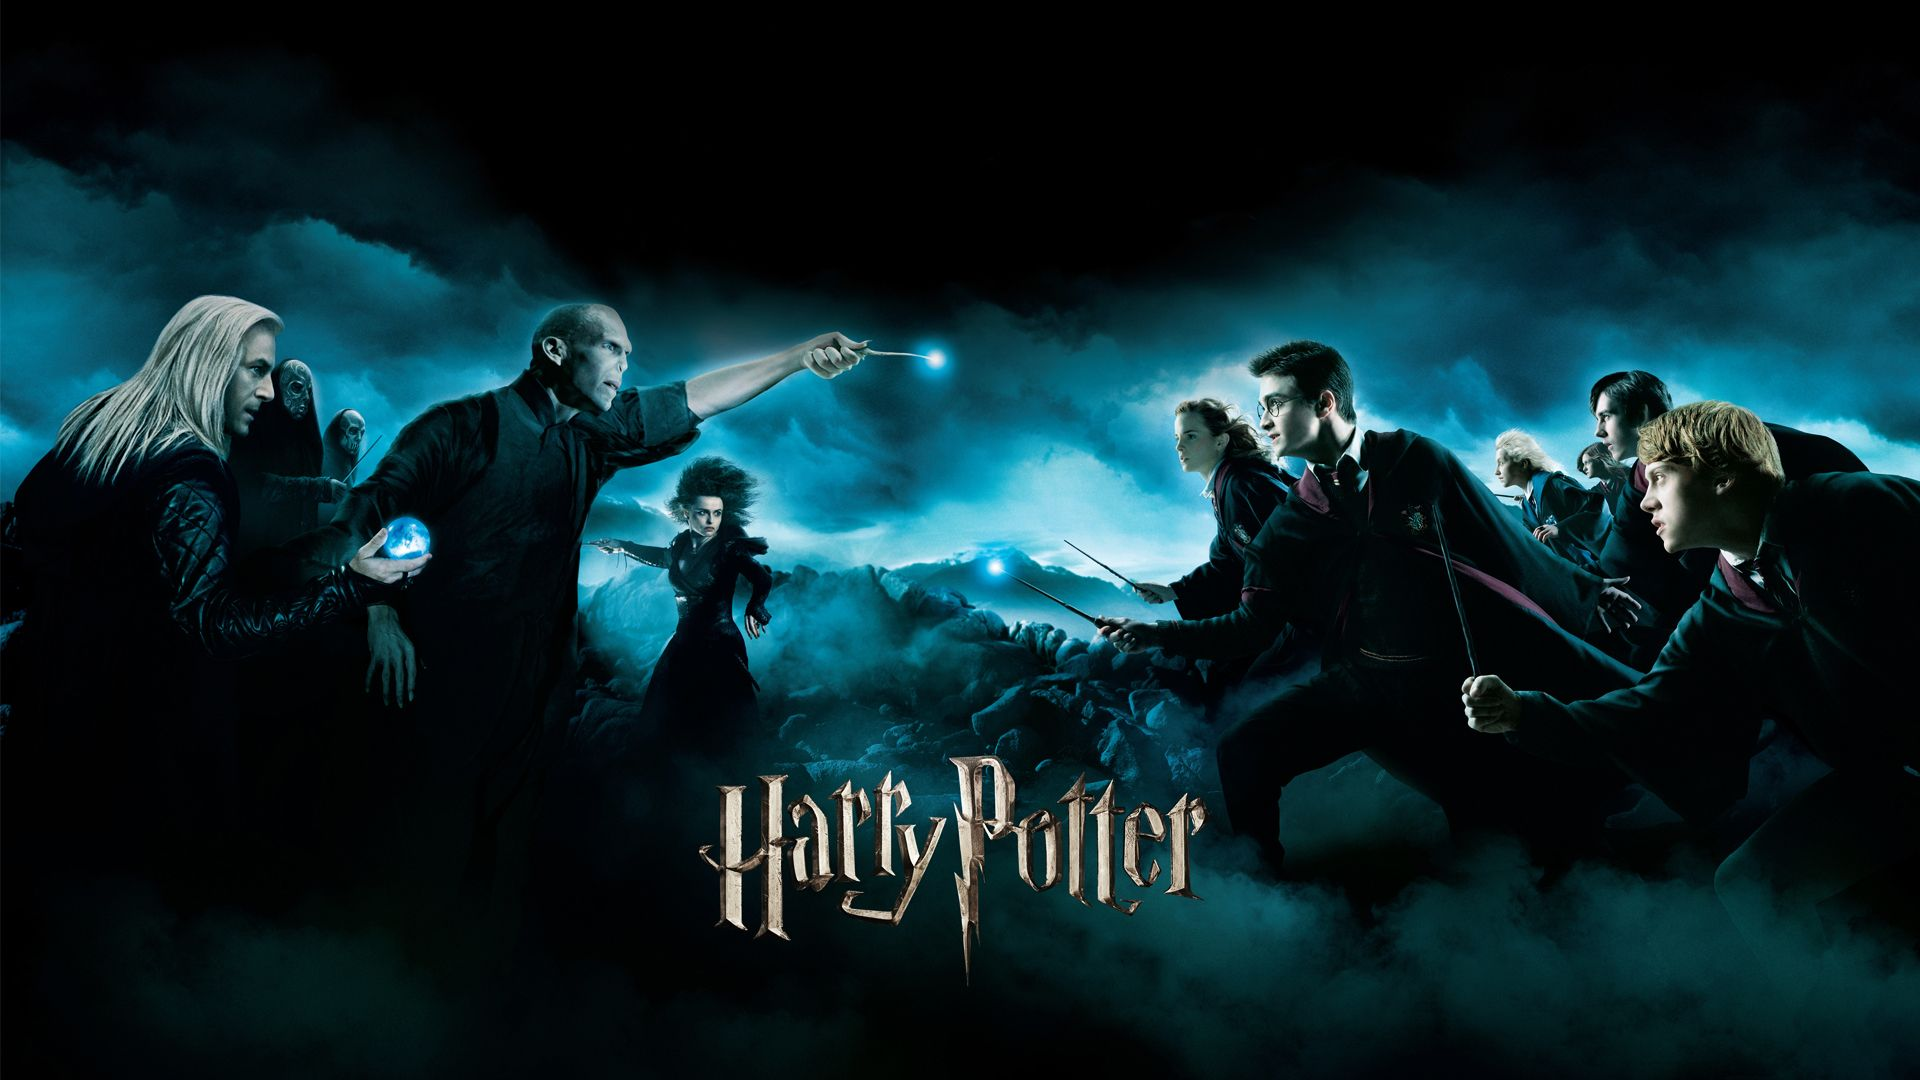 Harry Potter Wallpaper Hd Resolution For Free Wallpaper Harry Potter Wallpaper Harry Potter Background Harry Potter Wallpaper Backgrounds